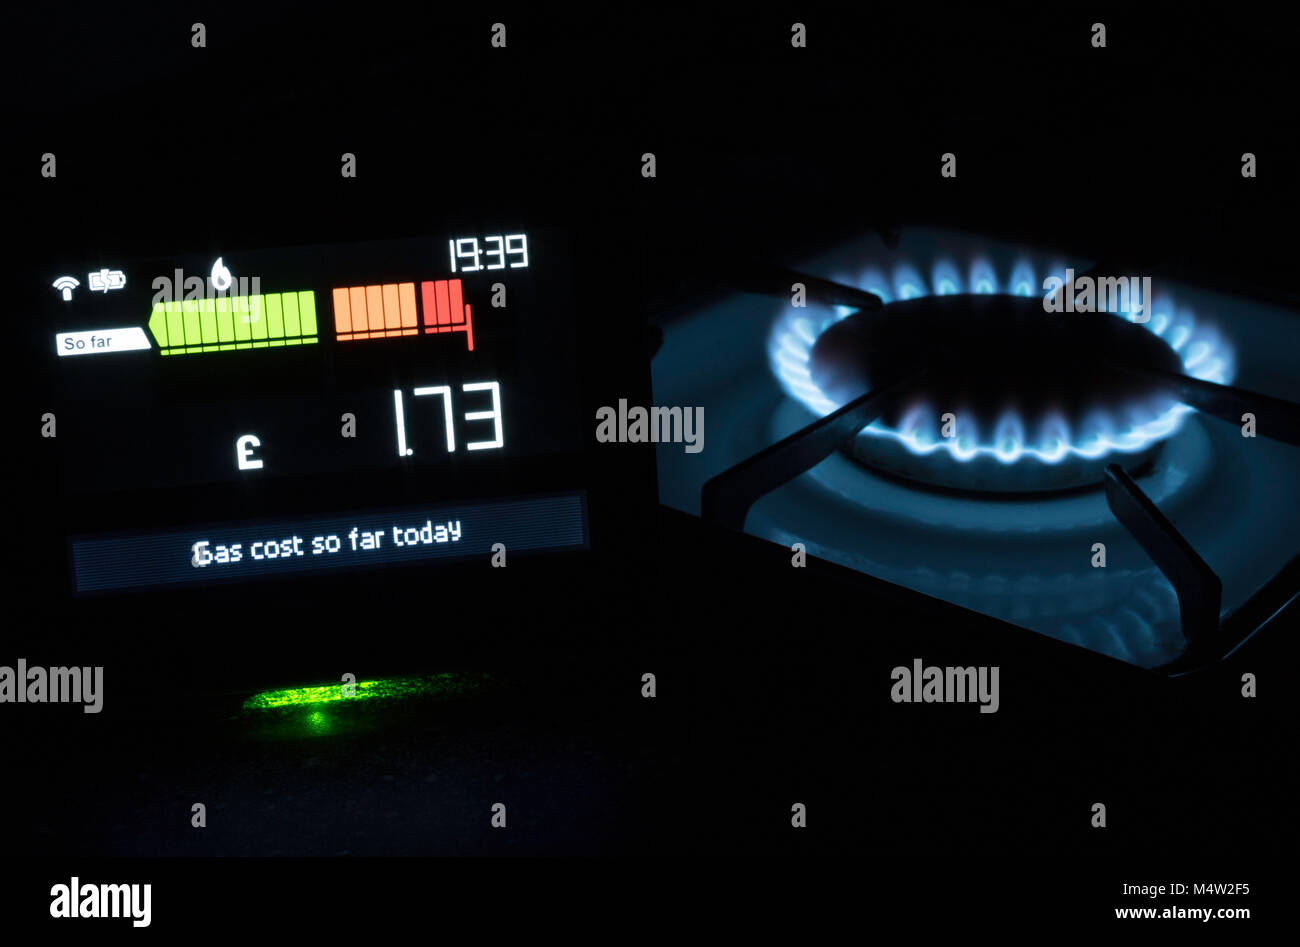 Chameleon Technology Smart meter showing cost of gas used today with gas hob in the background, England, UK - Stock Image